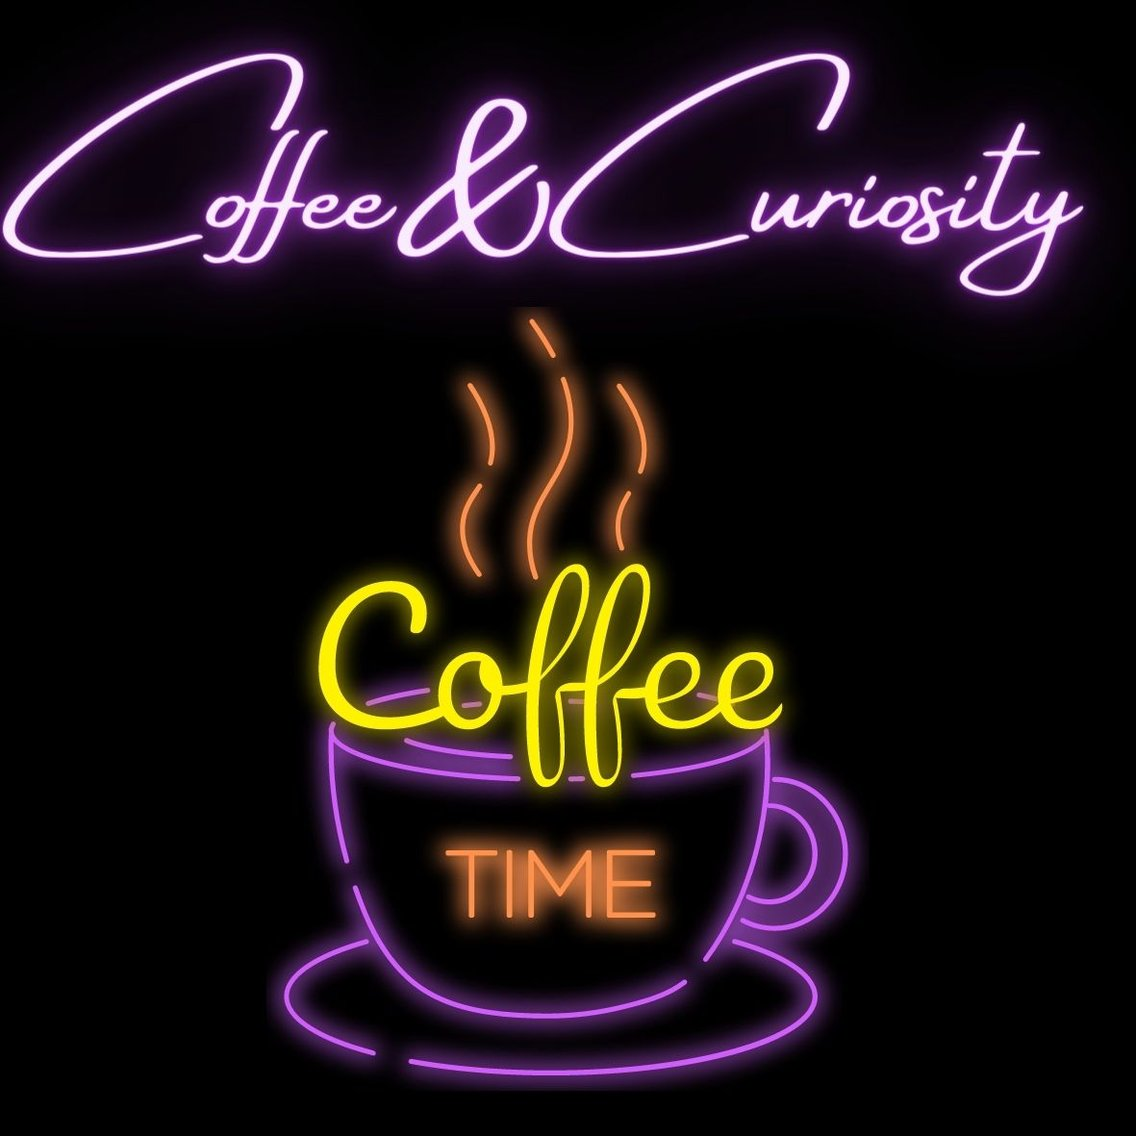 Coffee&Curiosity - Cover Image